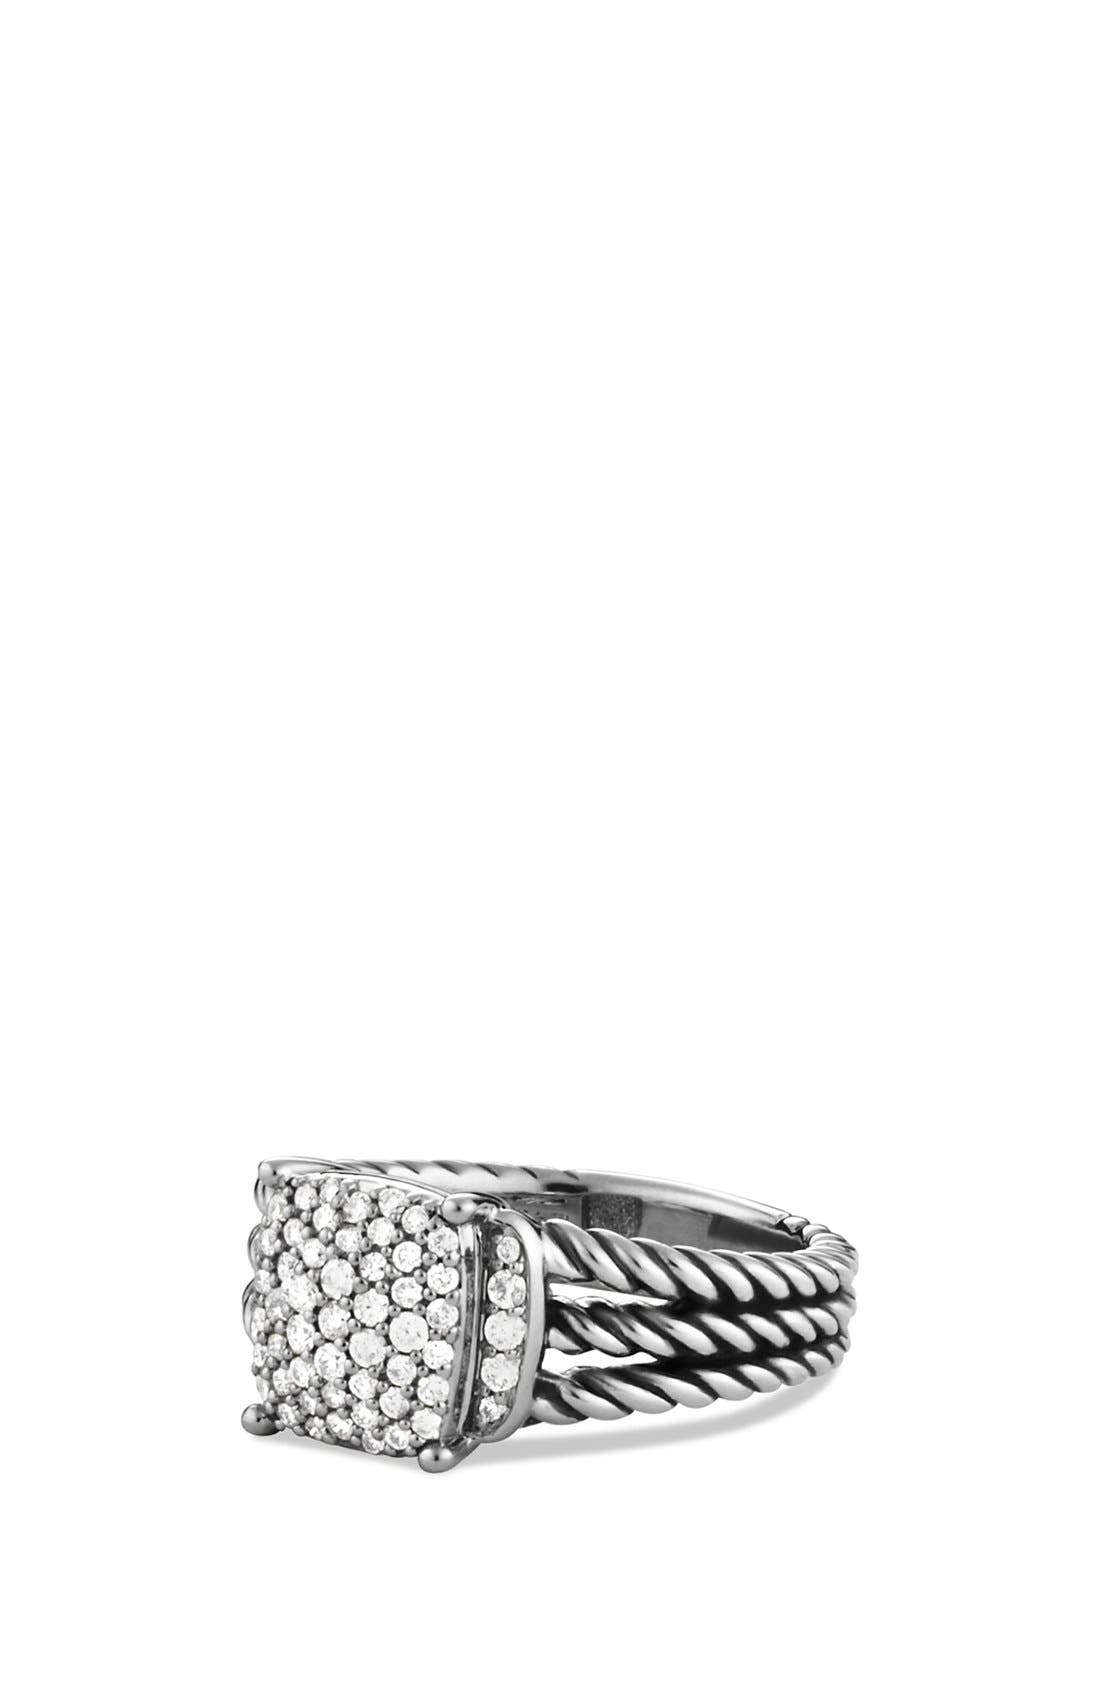 Main Image - David Yurman 'Wheaton' Petite Ring with Diamonds